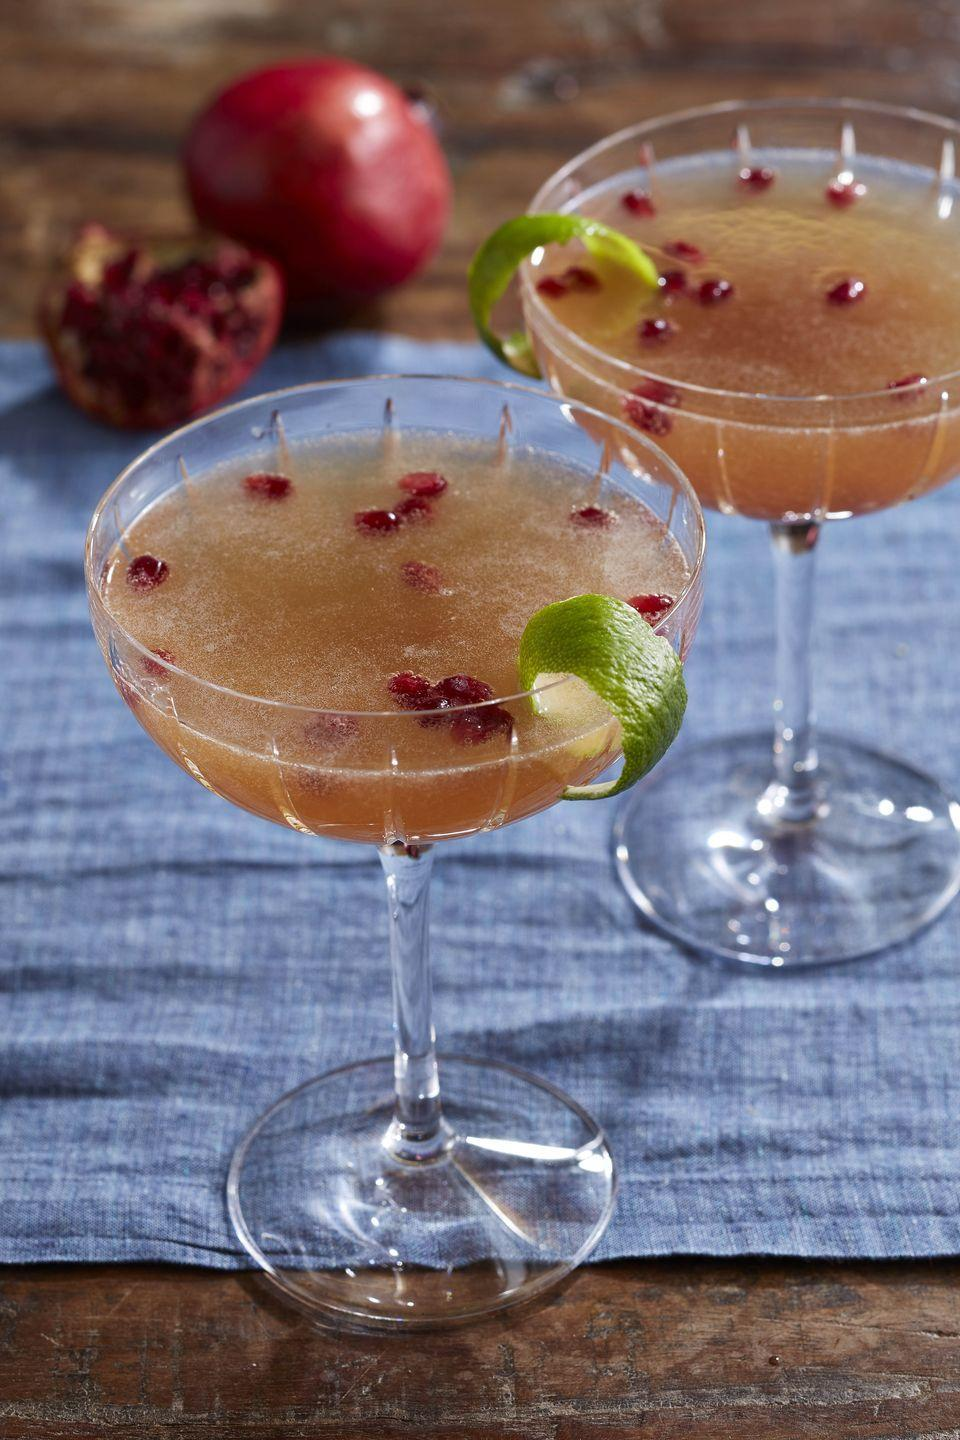 """<p><em>Casablanca</em> fans know all about this classic, elegant gin and Champagne cocktail, which is perfect for hoisting at midnight. We give it a seasonal tweak with the addition of pomegranate.</p><p><strong><a href=""""https://www.countryliving.com/food-drinks/a34347813/pomegranate-french-75-recipe/"""" rel=""""nofollow noopener"""" target=""""_blank"""" data-ylk=""""slk:Get the recipe"""" class=""""link rapid-noclick-resp"""">Get the recipe</a>.</strong></p><p><a class=""""link rapid-noclick-resp"""" href=""""https://www.amazon.com/dp/B07YBJ483D?tag=syn-yahoo-20&ascsubtag=%5Bartid%7C10050.g.2872%5Bsrc%7Cyahoo-us"""" rel=""""nofollow noopener"""" target=""""_blank"""" data-ylk=""""slk:SHOP BAR TOOLS"""">SHOP BAR TOOLS</a></p>"""